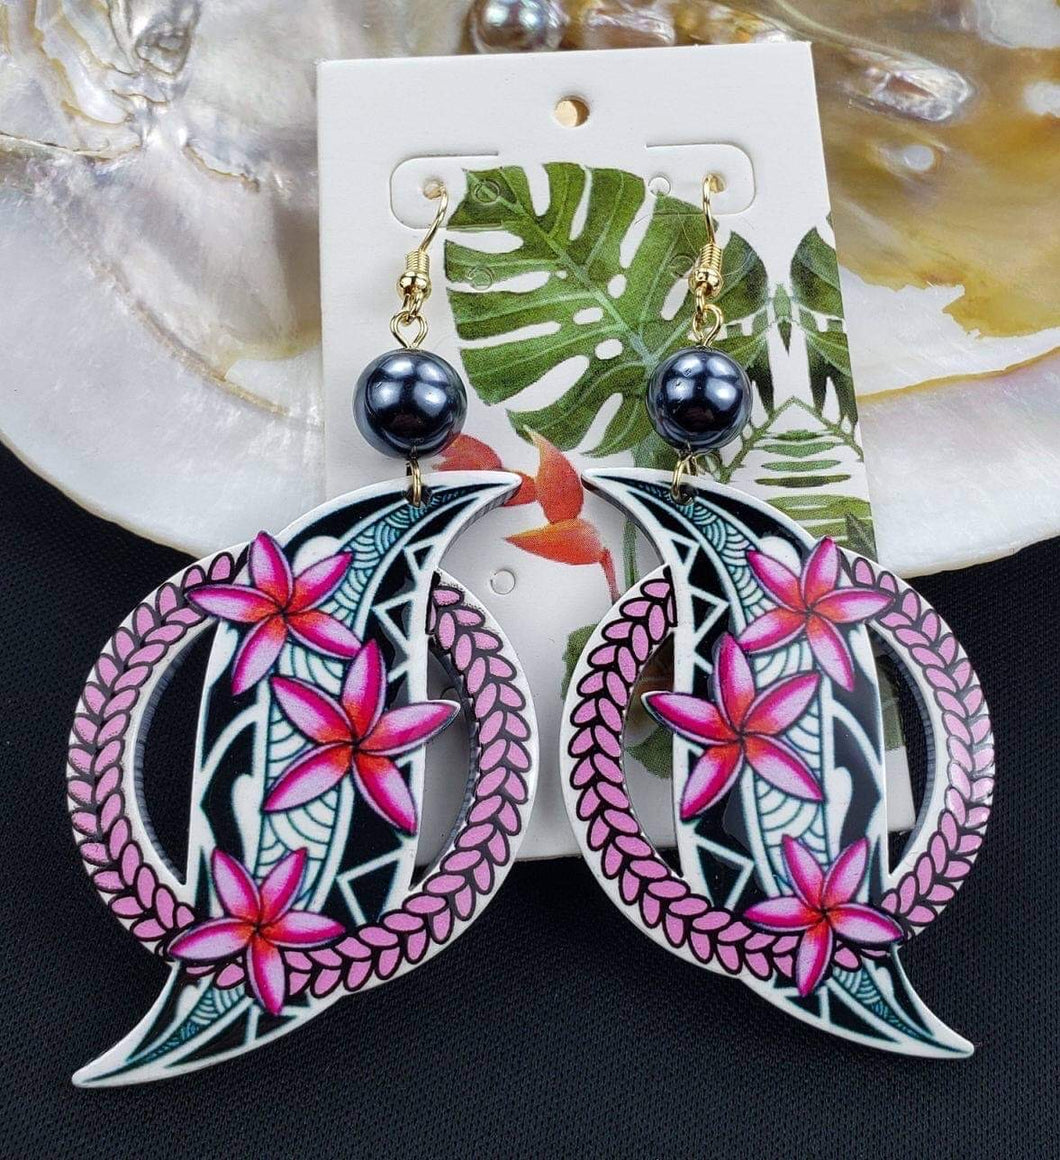 Transparent Laser-Etched Light Weight Acrylic Earrings S Polynesian Tribal